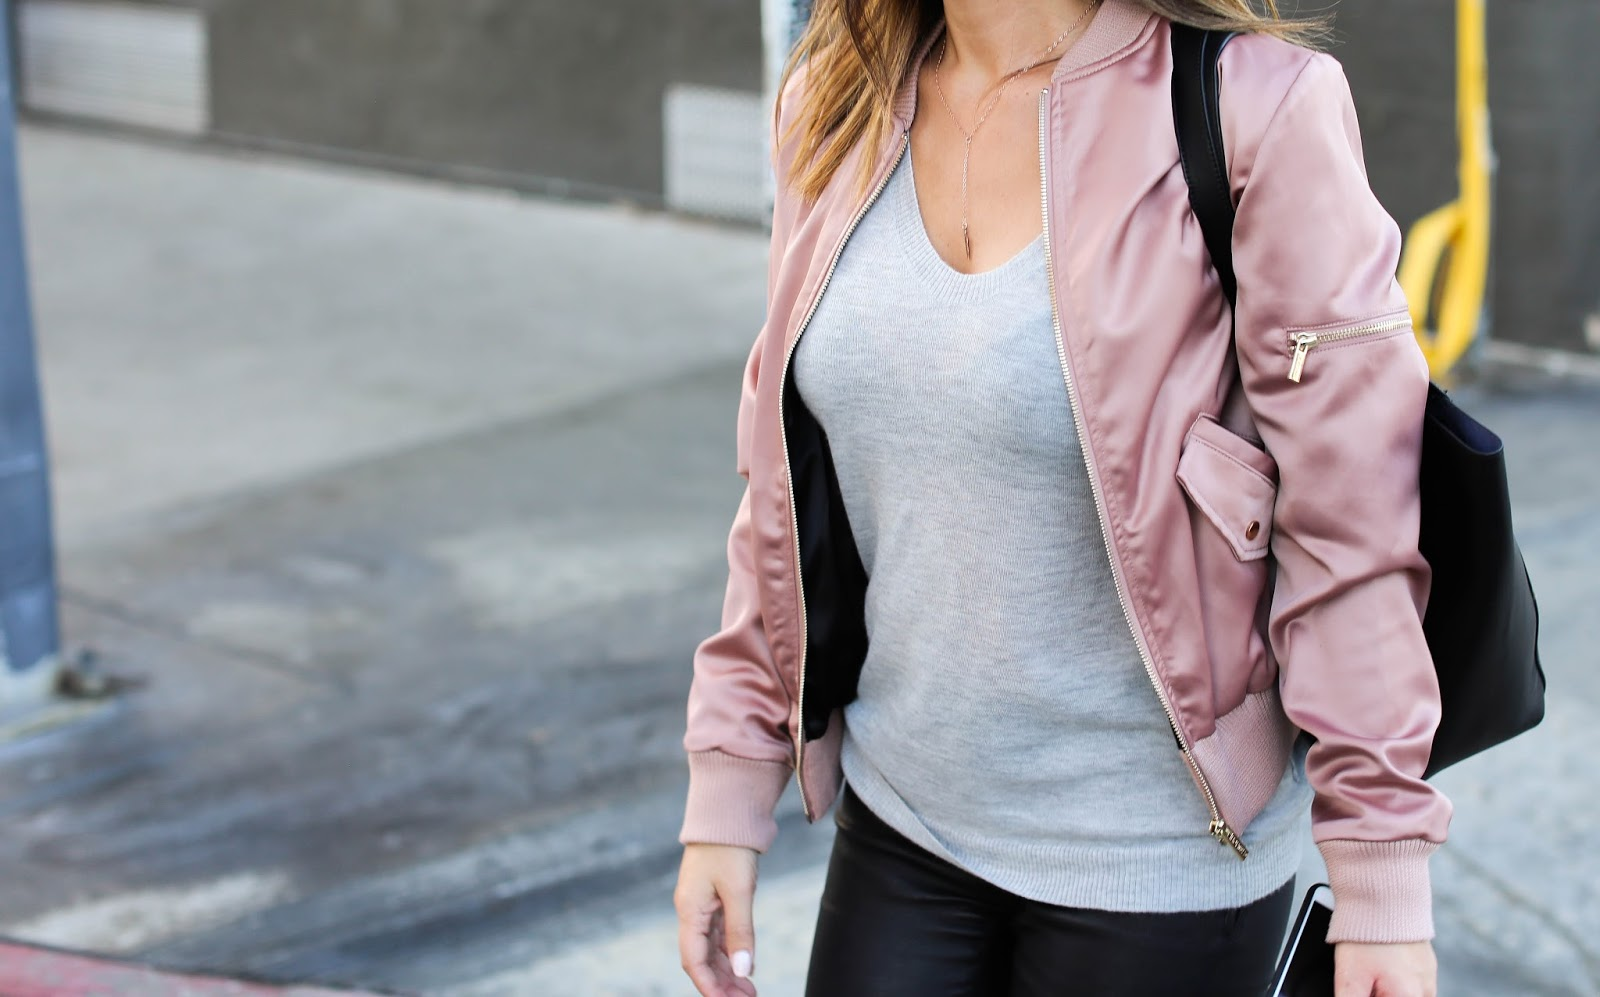 Marianna Hewitt Street Style - House of CB Pink Satin Bomber Jacket